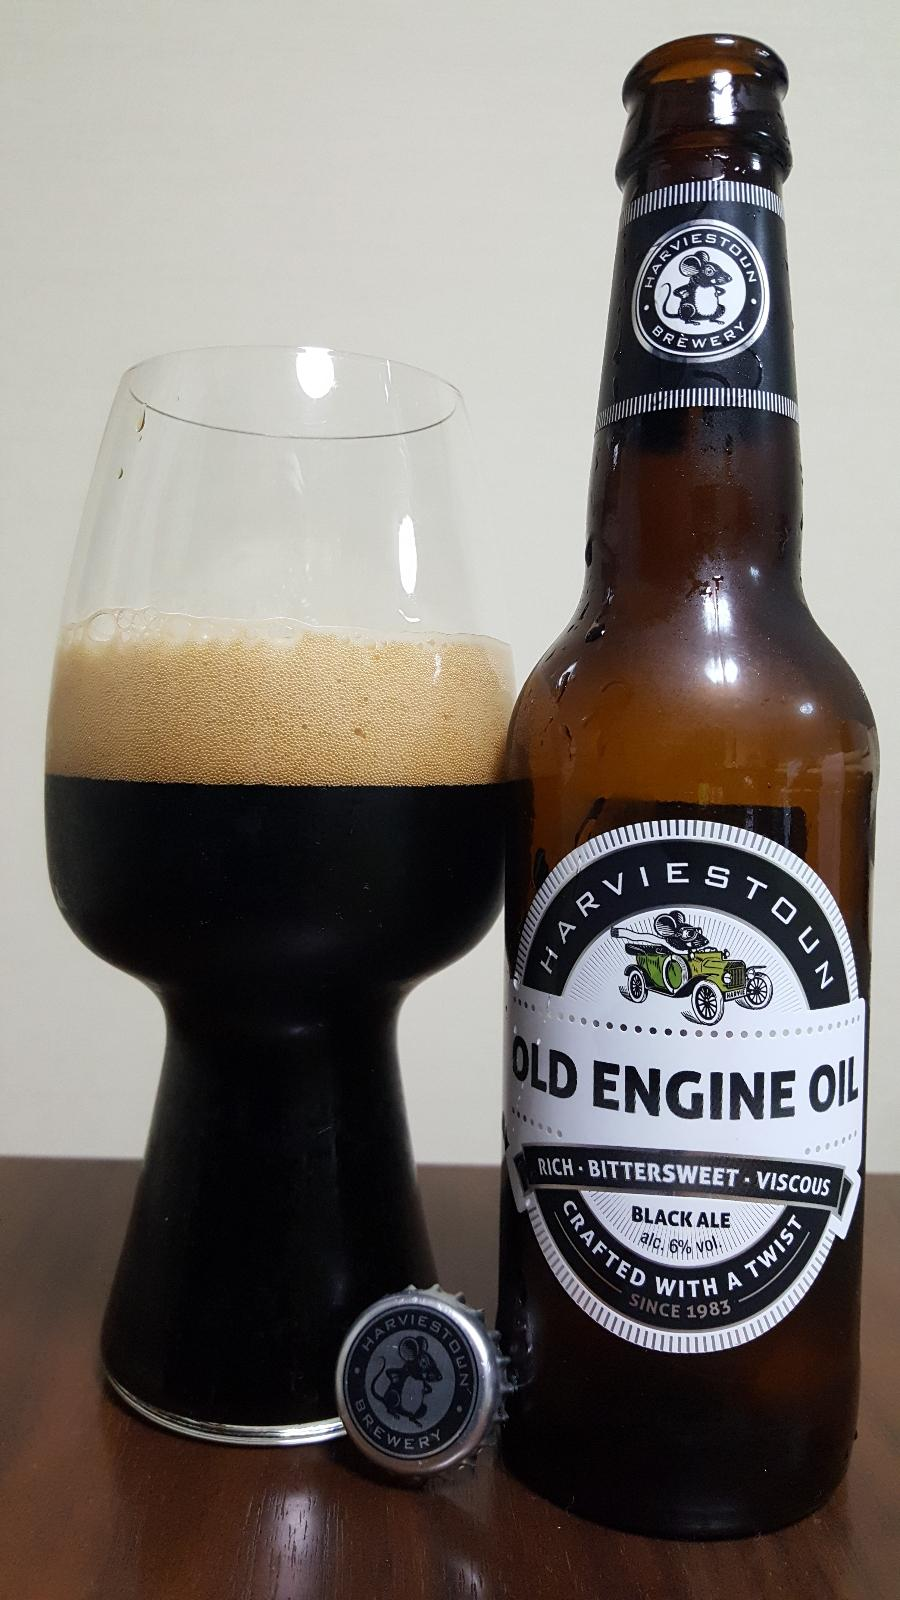 Old Engine Oil